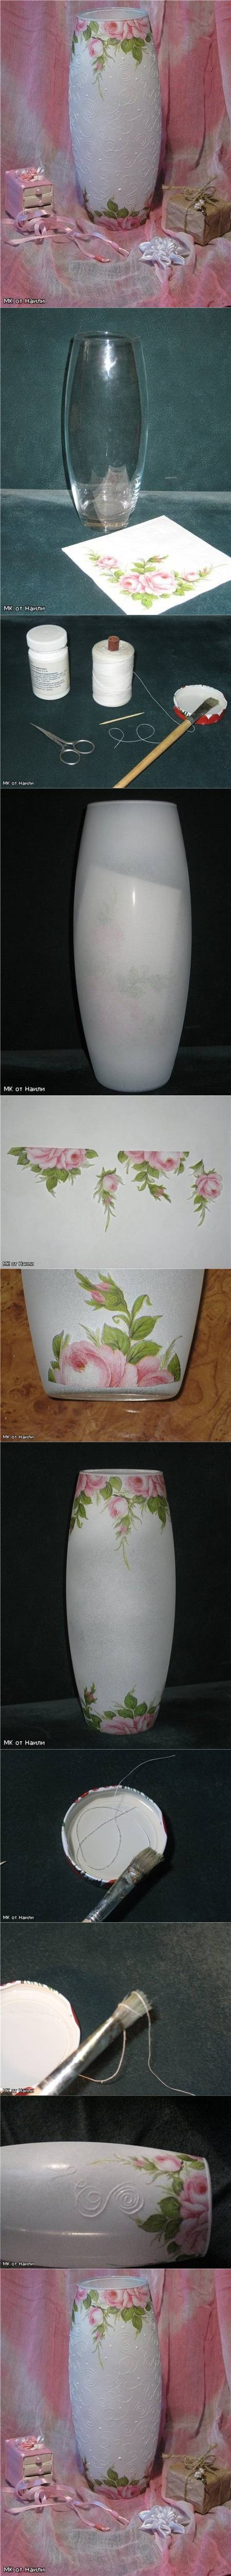 DIY-How-to-Paint-a-Glass-Jar.jpg